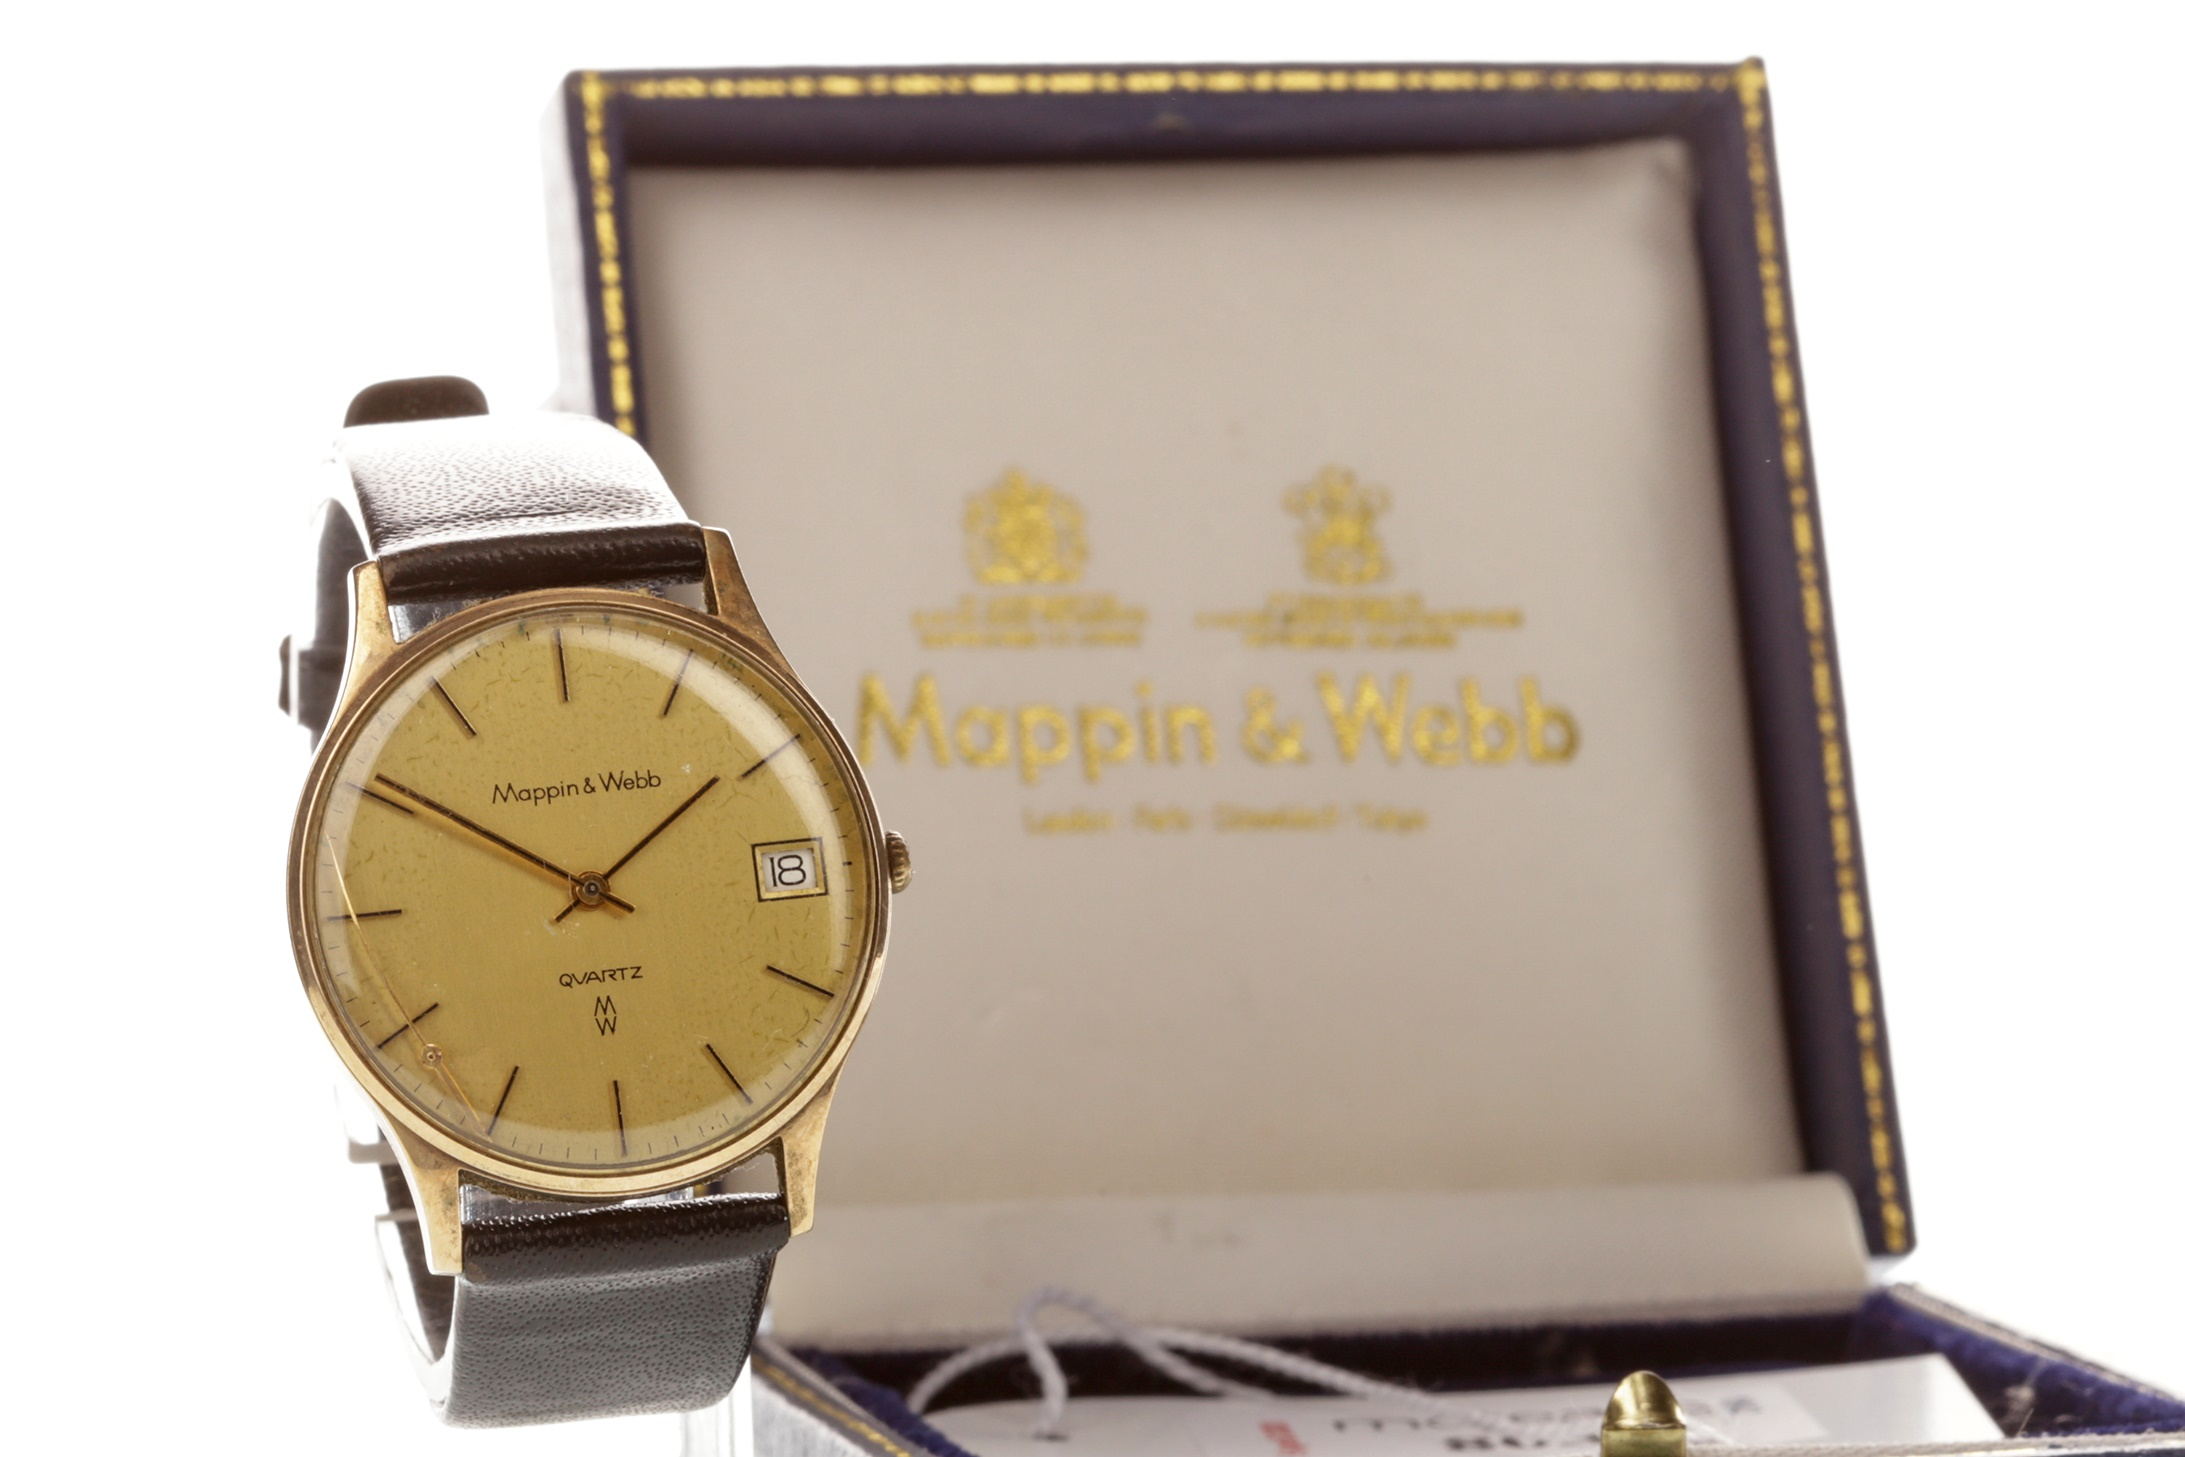 Lot 731 - A GENTLEMAN'S MAPPIN AND WEBB WATCH